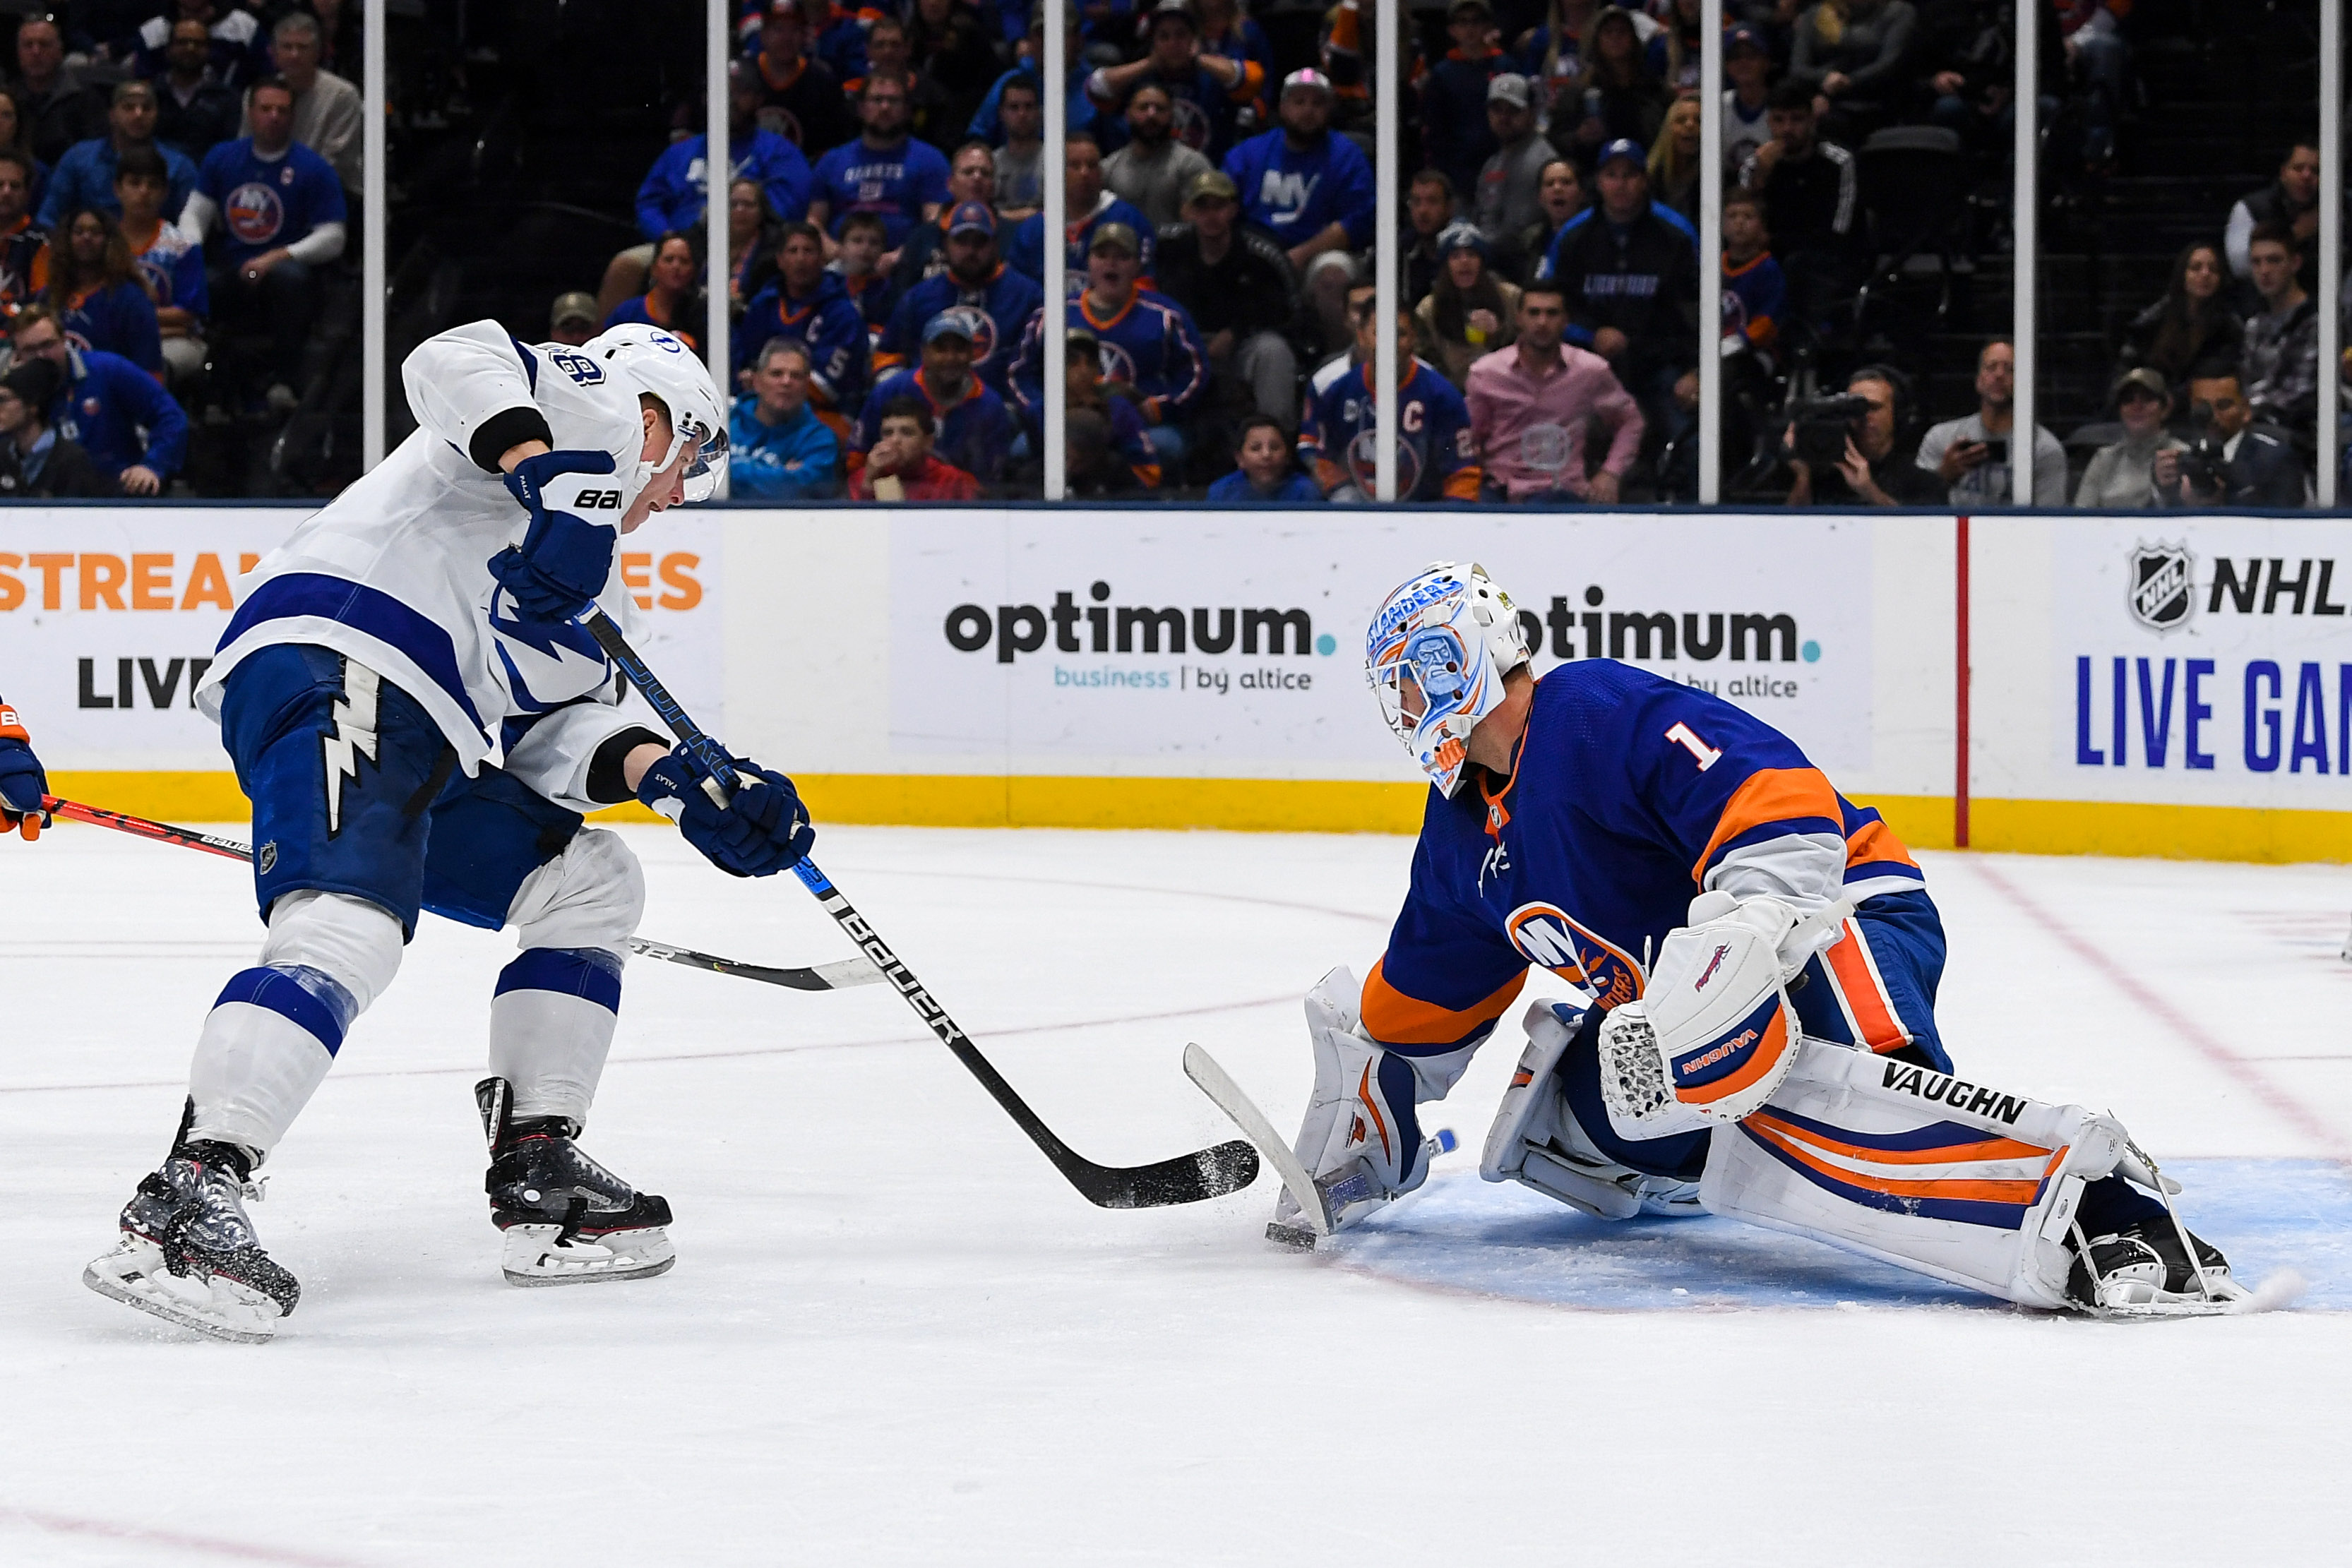 Nov 1, 2019; Uniondale, NY, USA; New York Islanders goaltender Thomas Greiss (1) makes a save on Tampa Bay Lightning left wing Ondrej Palat (18) during the first period at Nassau Veterans Memorial Coliseum. Mandatory Credit: Dennis Schneidler-USA TODAY Sports